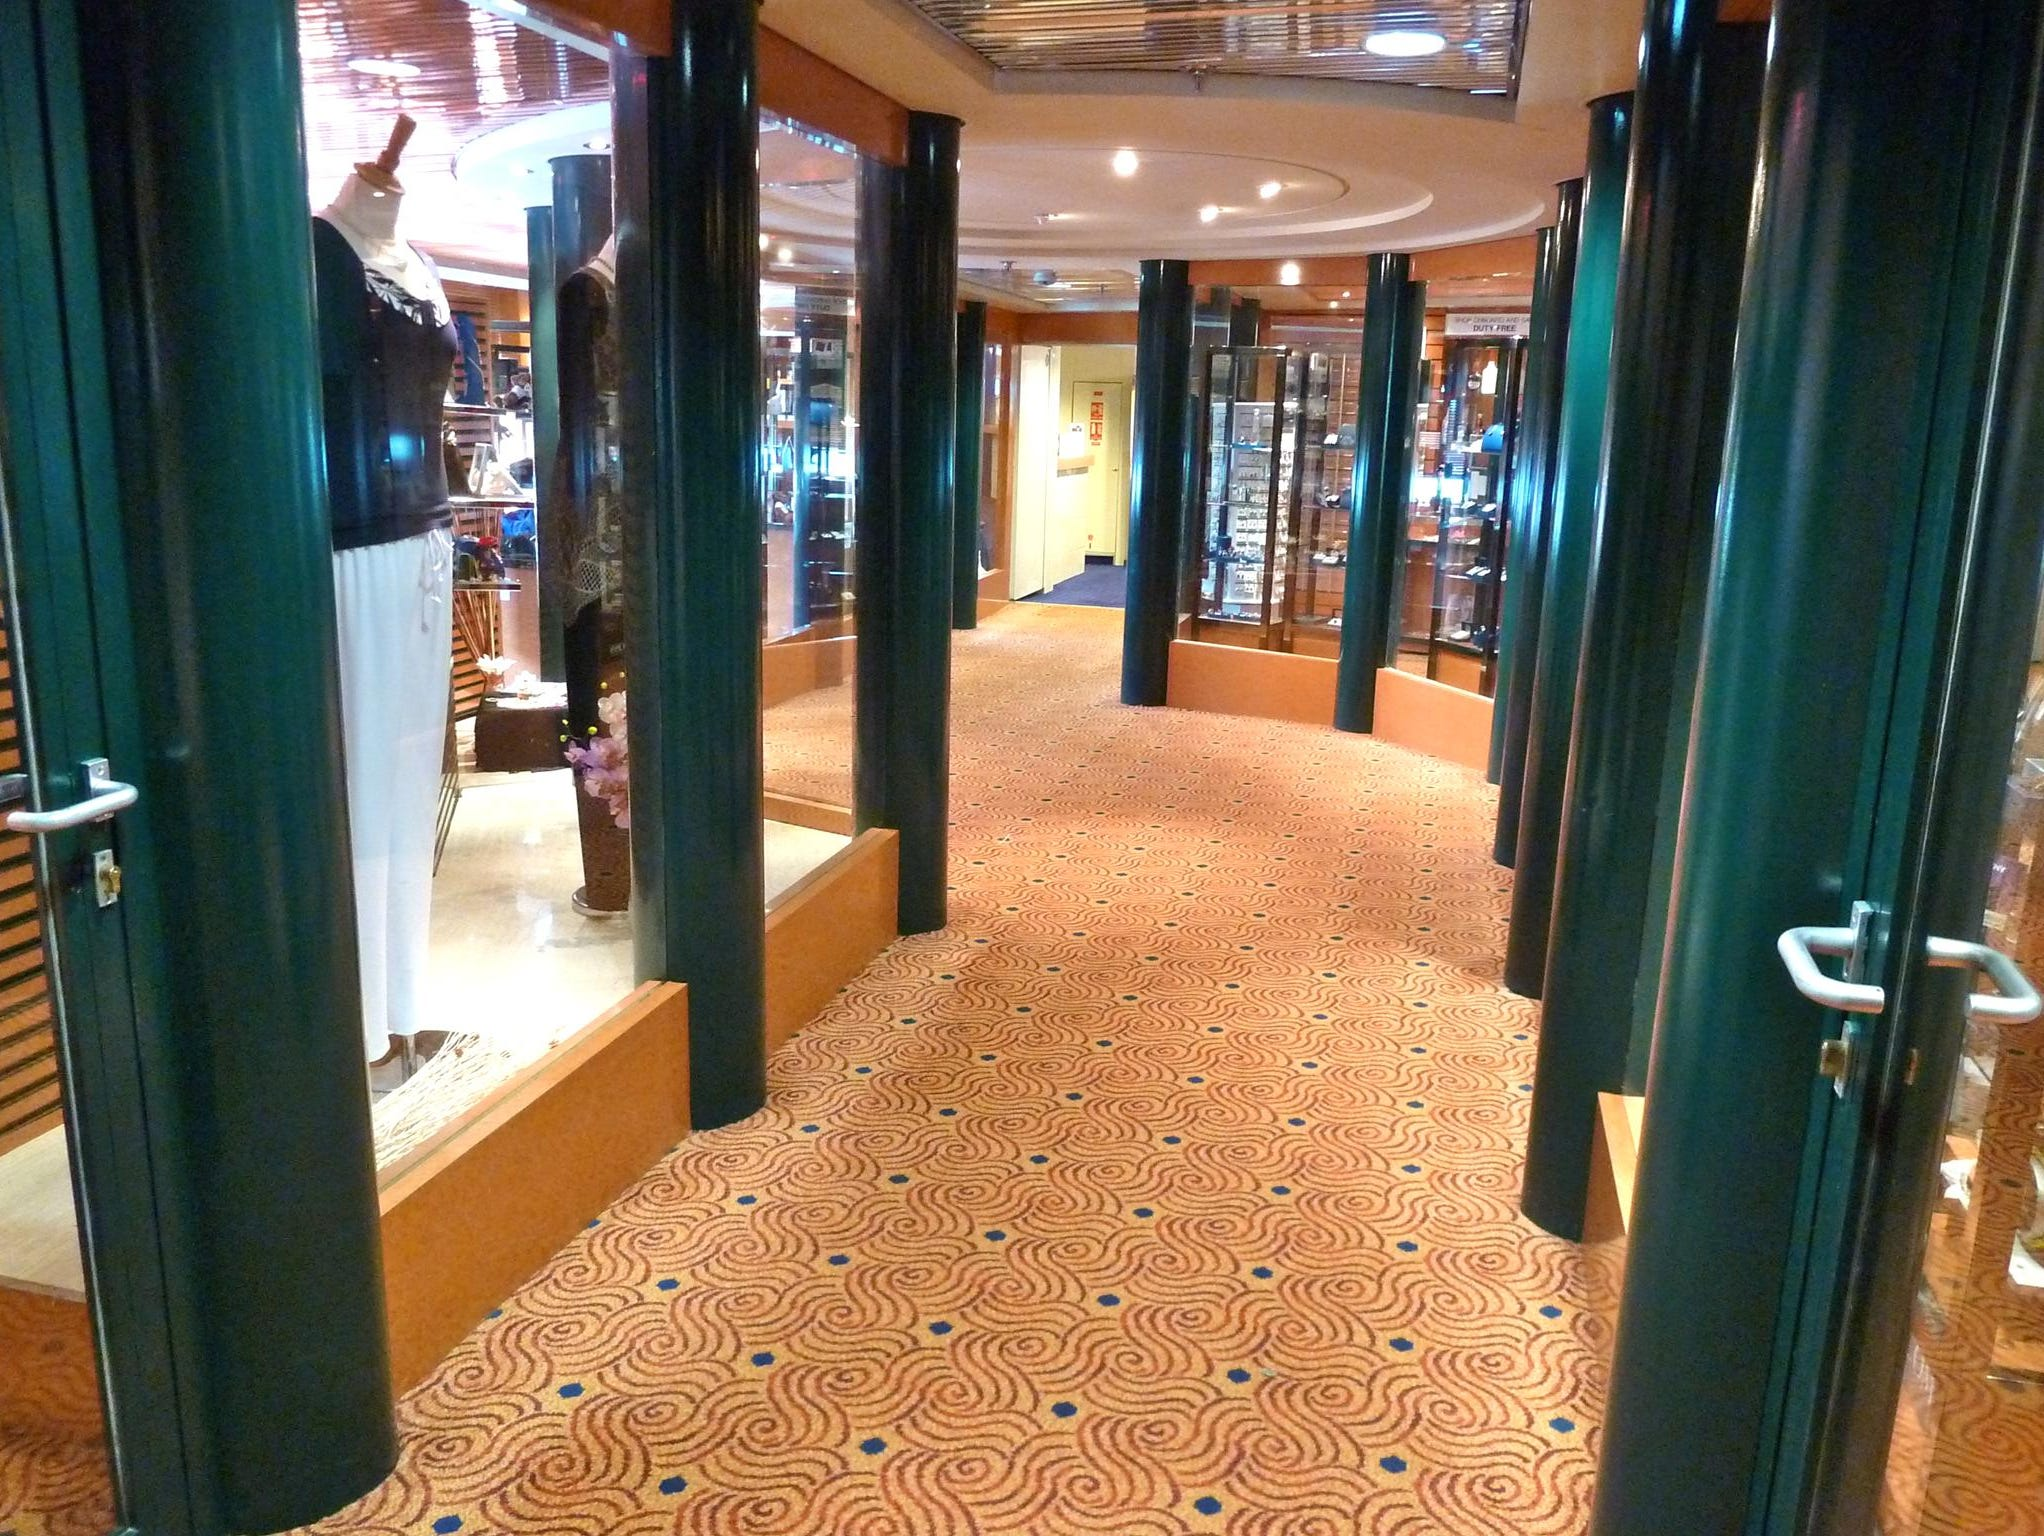 On the port side of Magellan Deck, a passage meanders through the Marco Polo's boutiques.